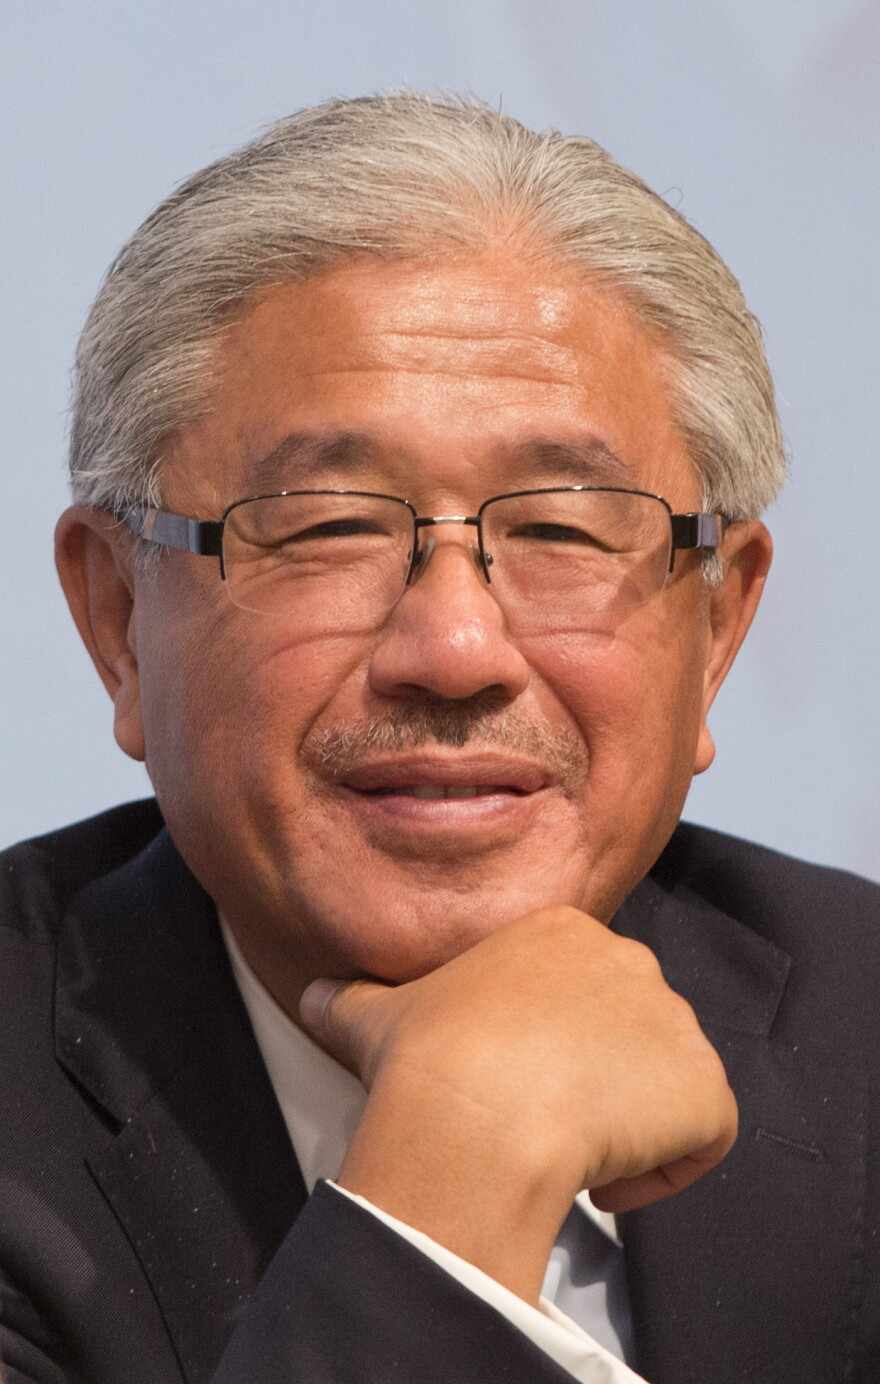 Dr. Victor Dzau, president of the National Academy of Medicine, attends the 2015 World Health Summit in Berlin, Germany.